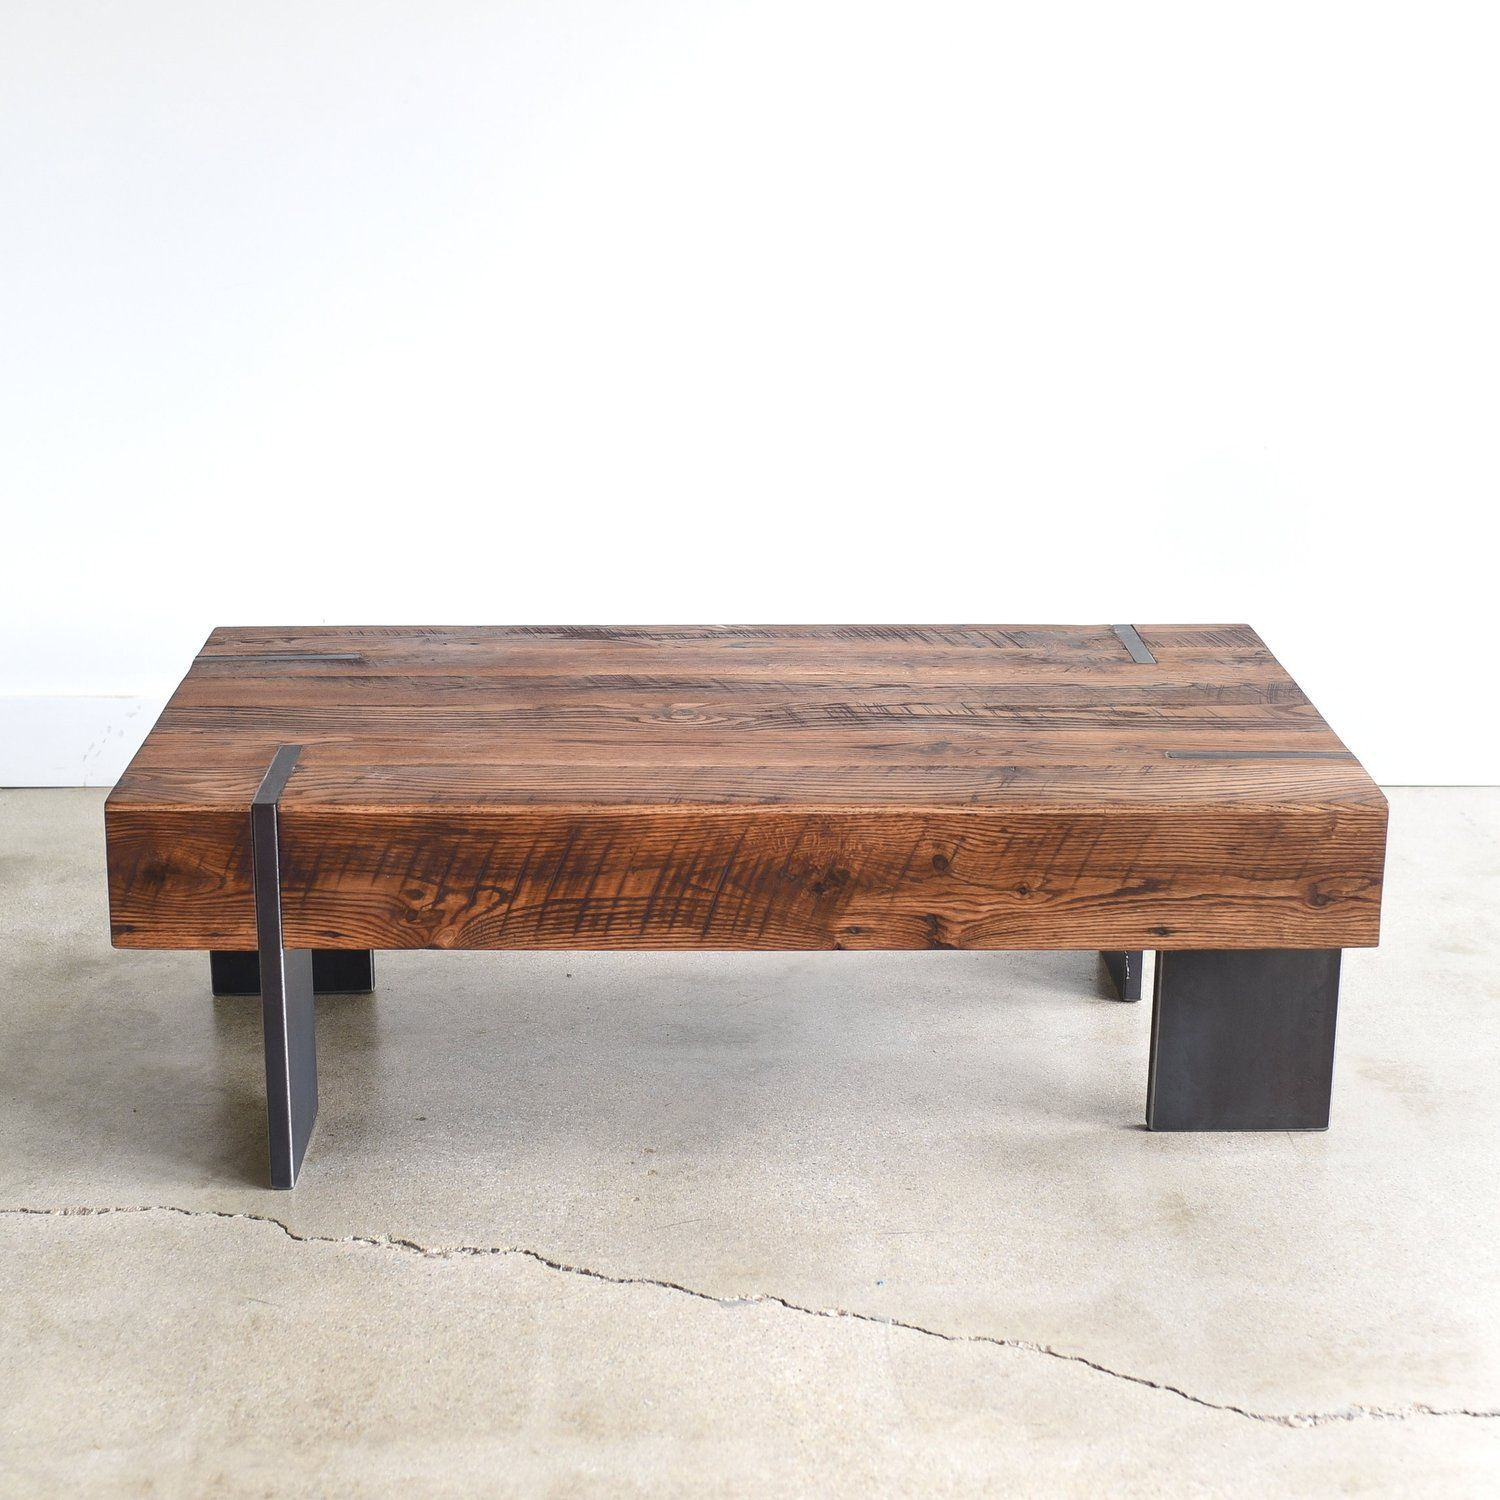 Large Modern Reclaimed Wood Coffee Table What We Make Old Wood Table Reclaimed Wood Coffee Table Modern Wood Coffee Table [ 1500 x 1500 Pixel ]